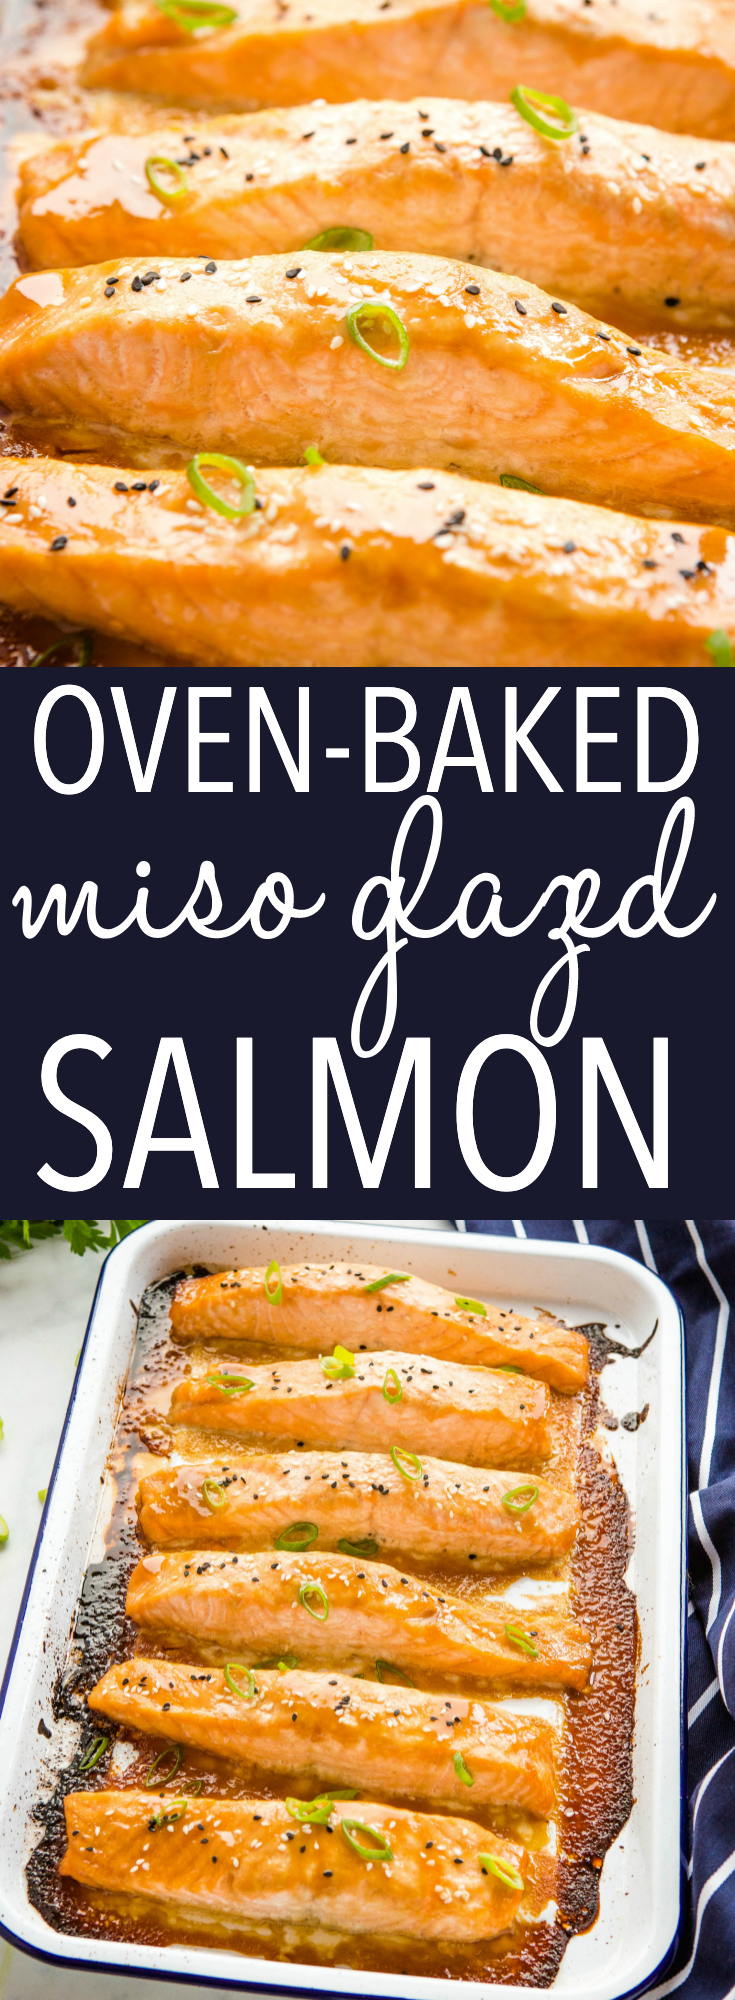 This Easy Glazed Miso Salmon is a super simple baked salmon recipe with a 4-ingredient miso glaze. Ready in 15 minutes! Recipe from thebusybaker.ca! #misosalmon #easybakedsalmon #bakedsalmon #lowcarb #healthy #healthysalmon #seafood #familymeal #dinner #maincourse via @busybakerblog